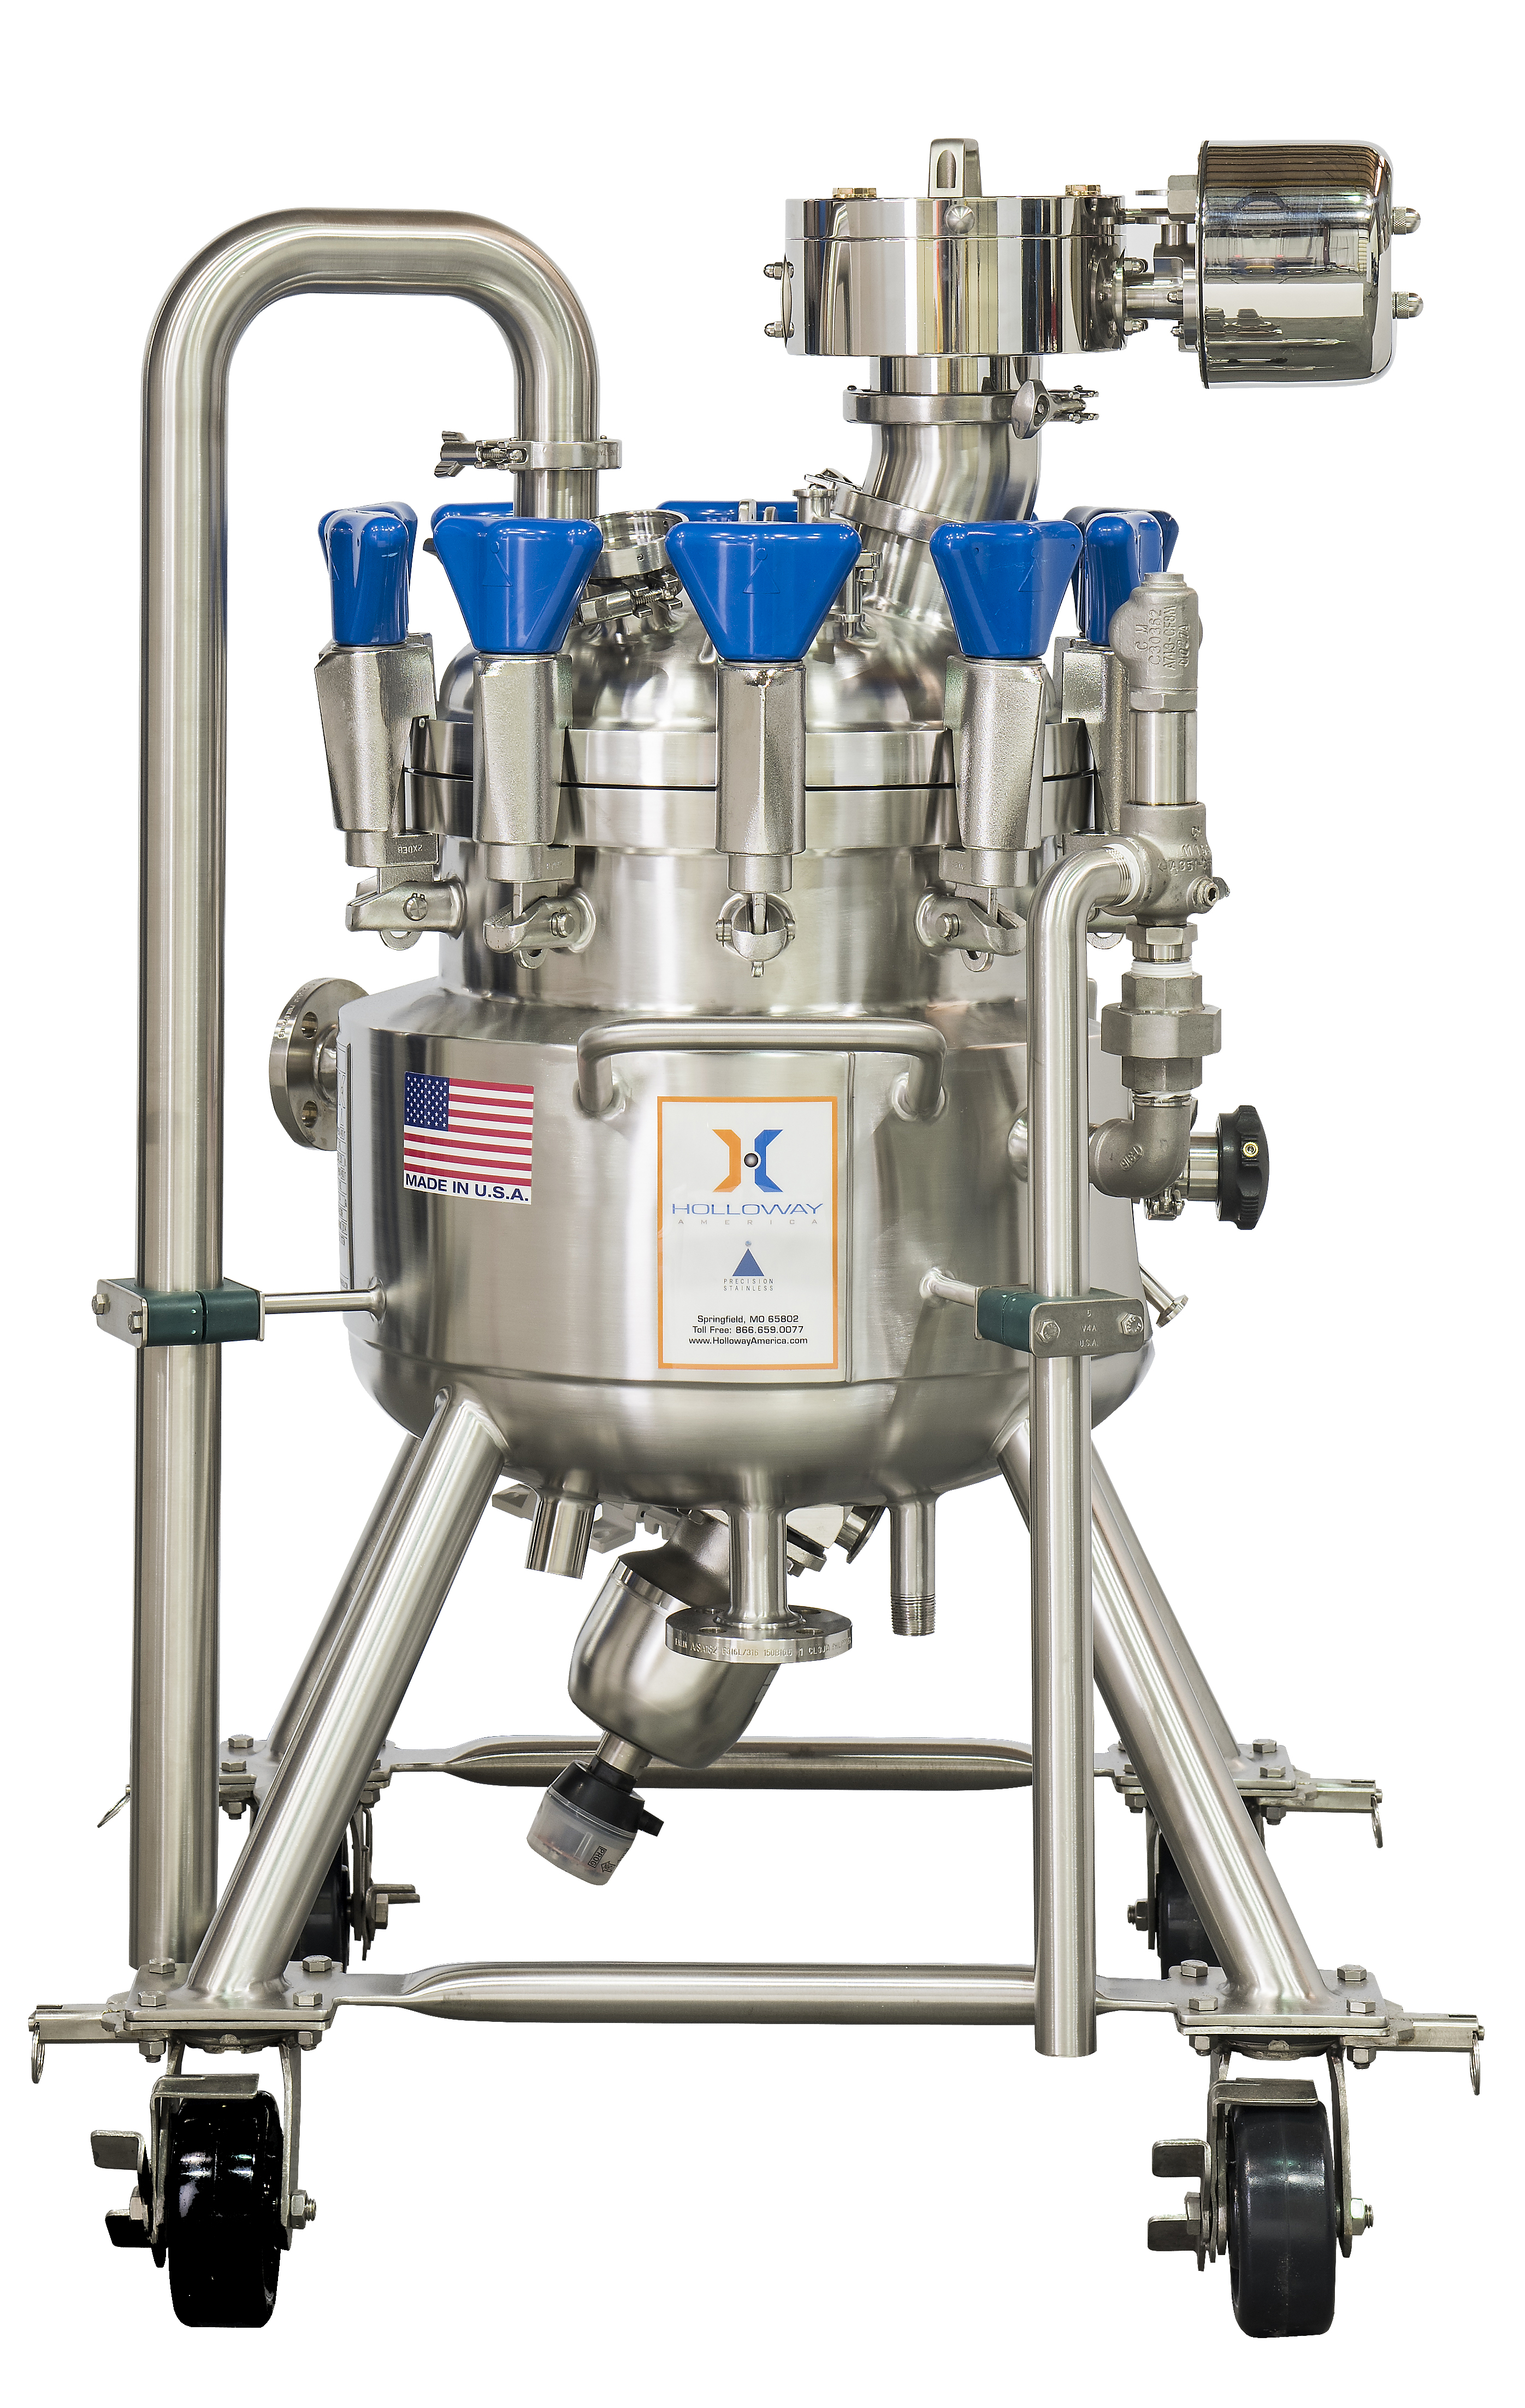 This laboratory pressure vessel is among portable pressure vessels from Holloway.